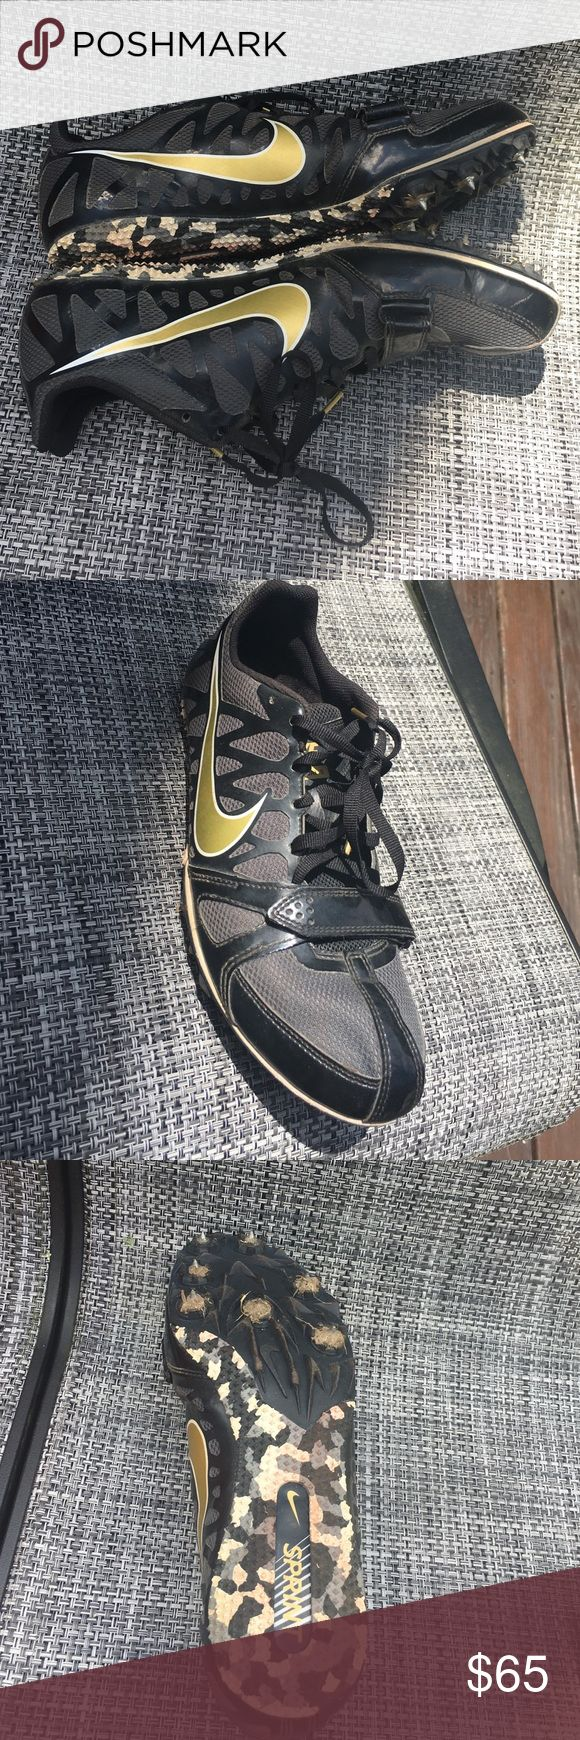 Black and gold sprinting spikes Great condition black and gold sprinting short distance spikes. Worn for one outdoor track season. Dirt around the spikes on the bottom, but overall great condition! Velcro on top above laces. Will come with a spike wrench, Nike shoe box, and back up spikes! No scuffs or marks on top of shoe at all :) make offers Nike Shoes Athletic Shoes